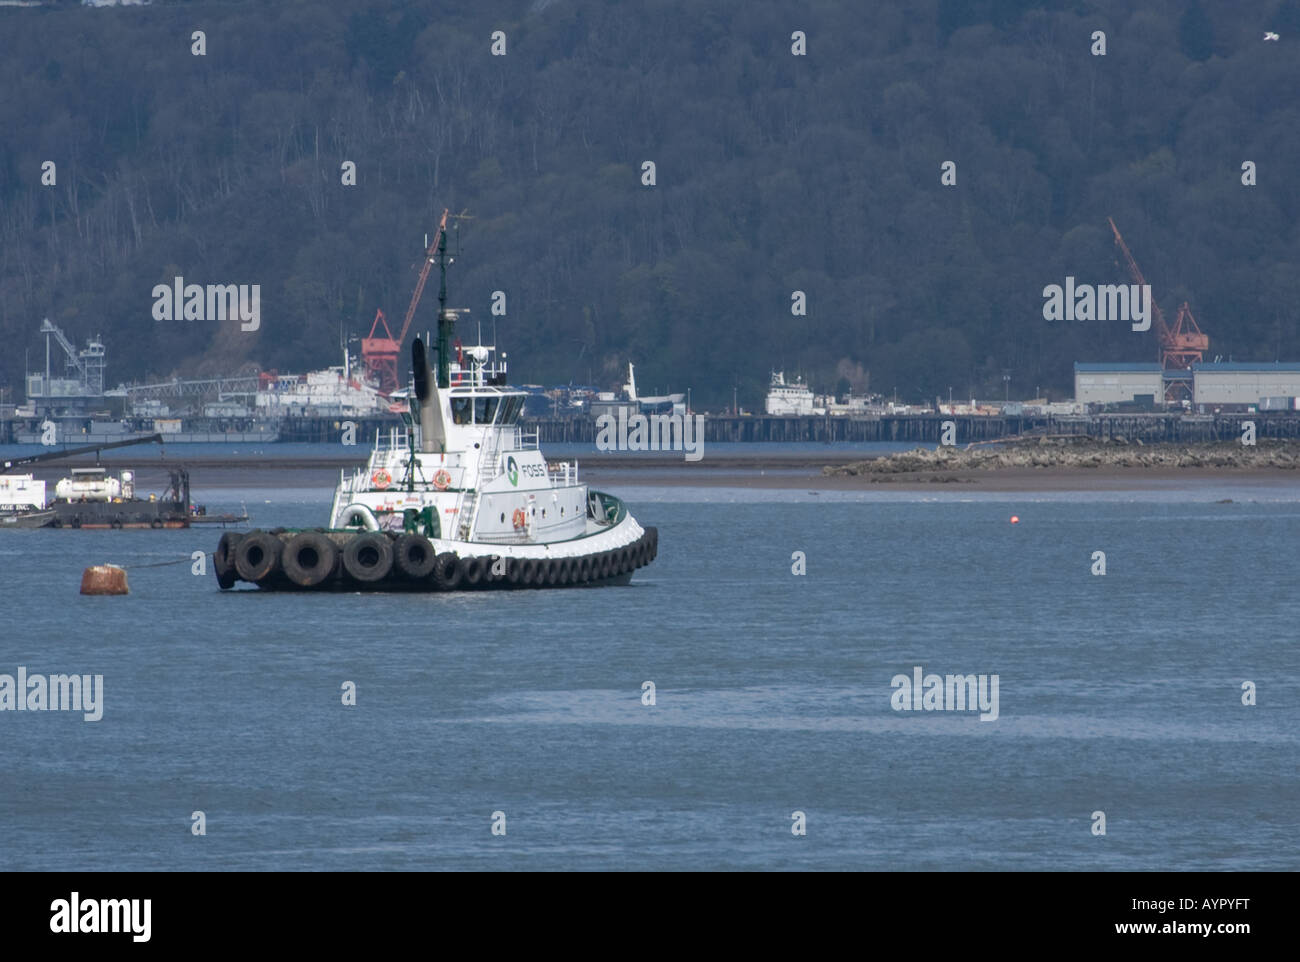 Tugboat anchored in Commencement bay, Tacoma, WA - Stock Image